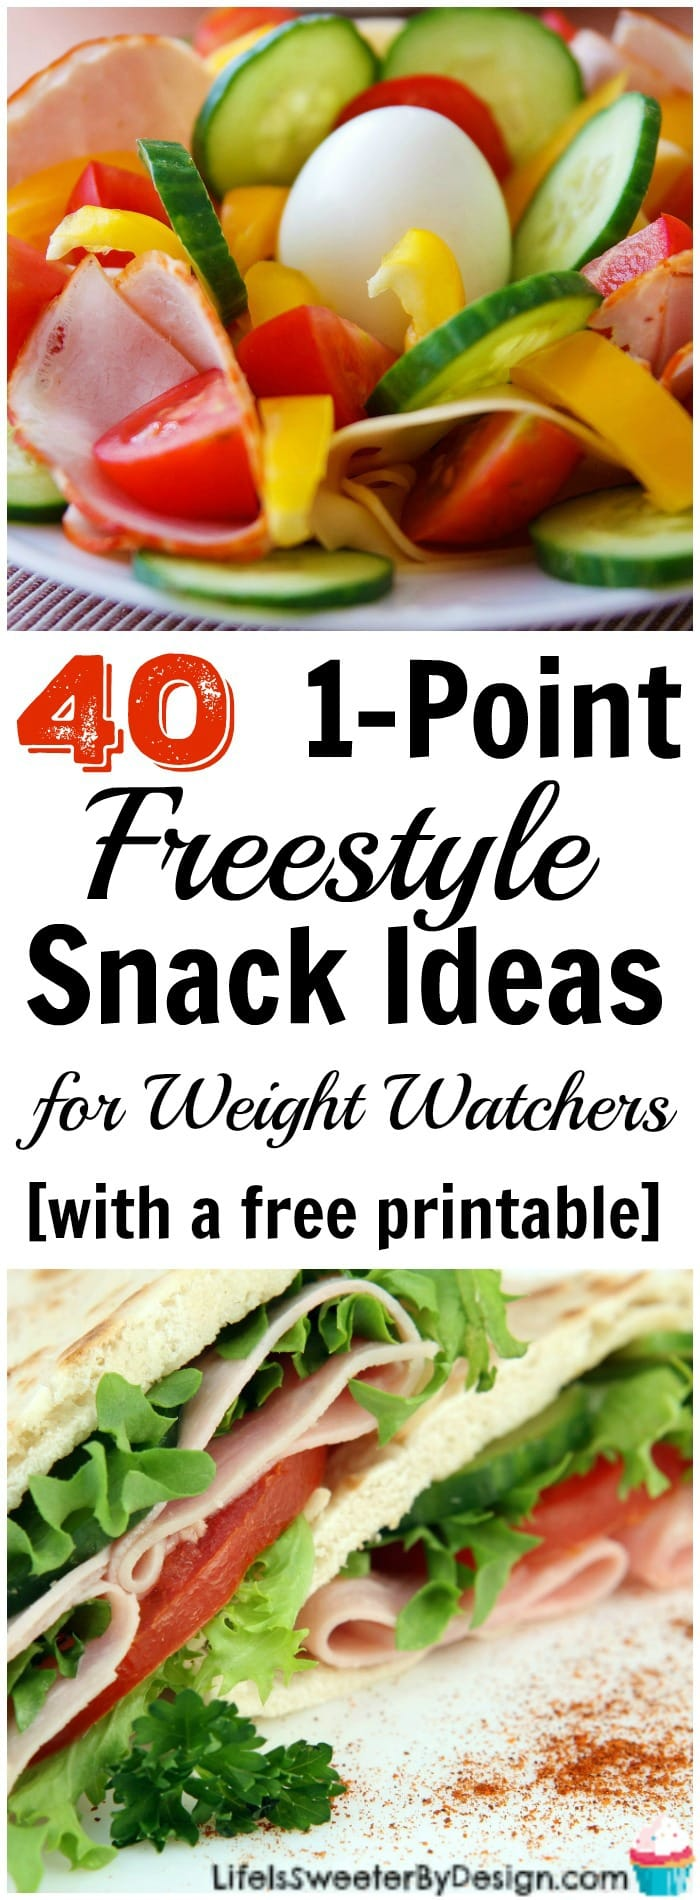 1 freestyle smartpoint snack ideas for weight watchers. Black Bedroom Furniture Sets. Home Design Ideas